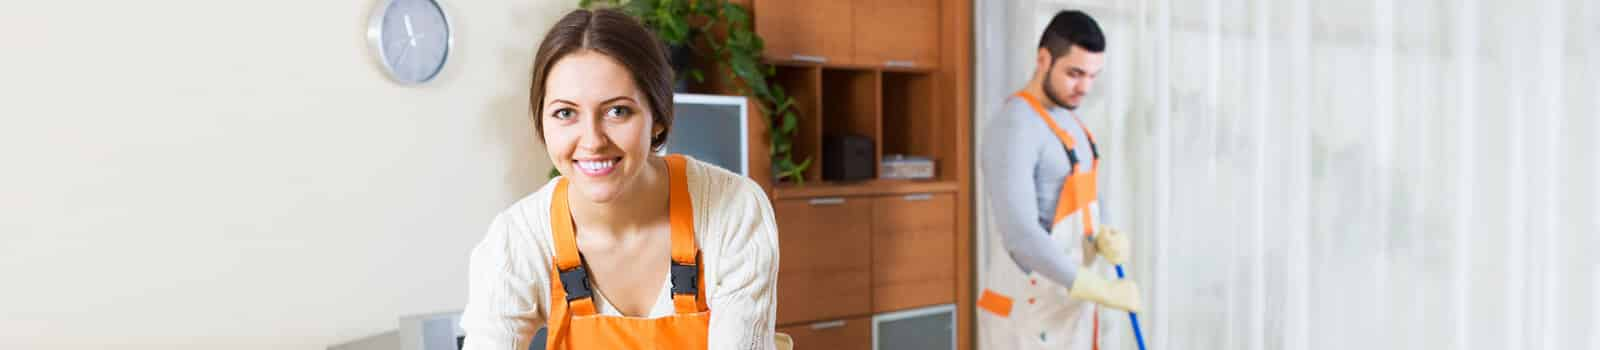 House Cleaning Services in Florida